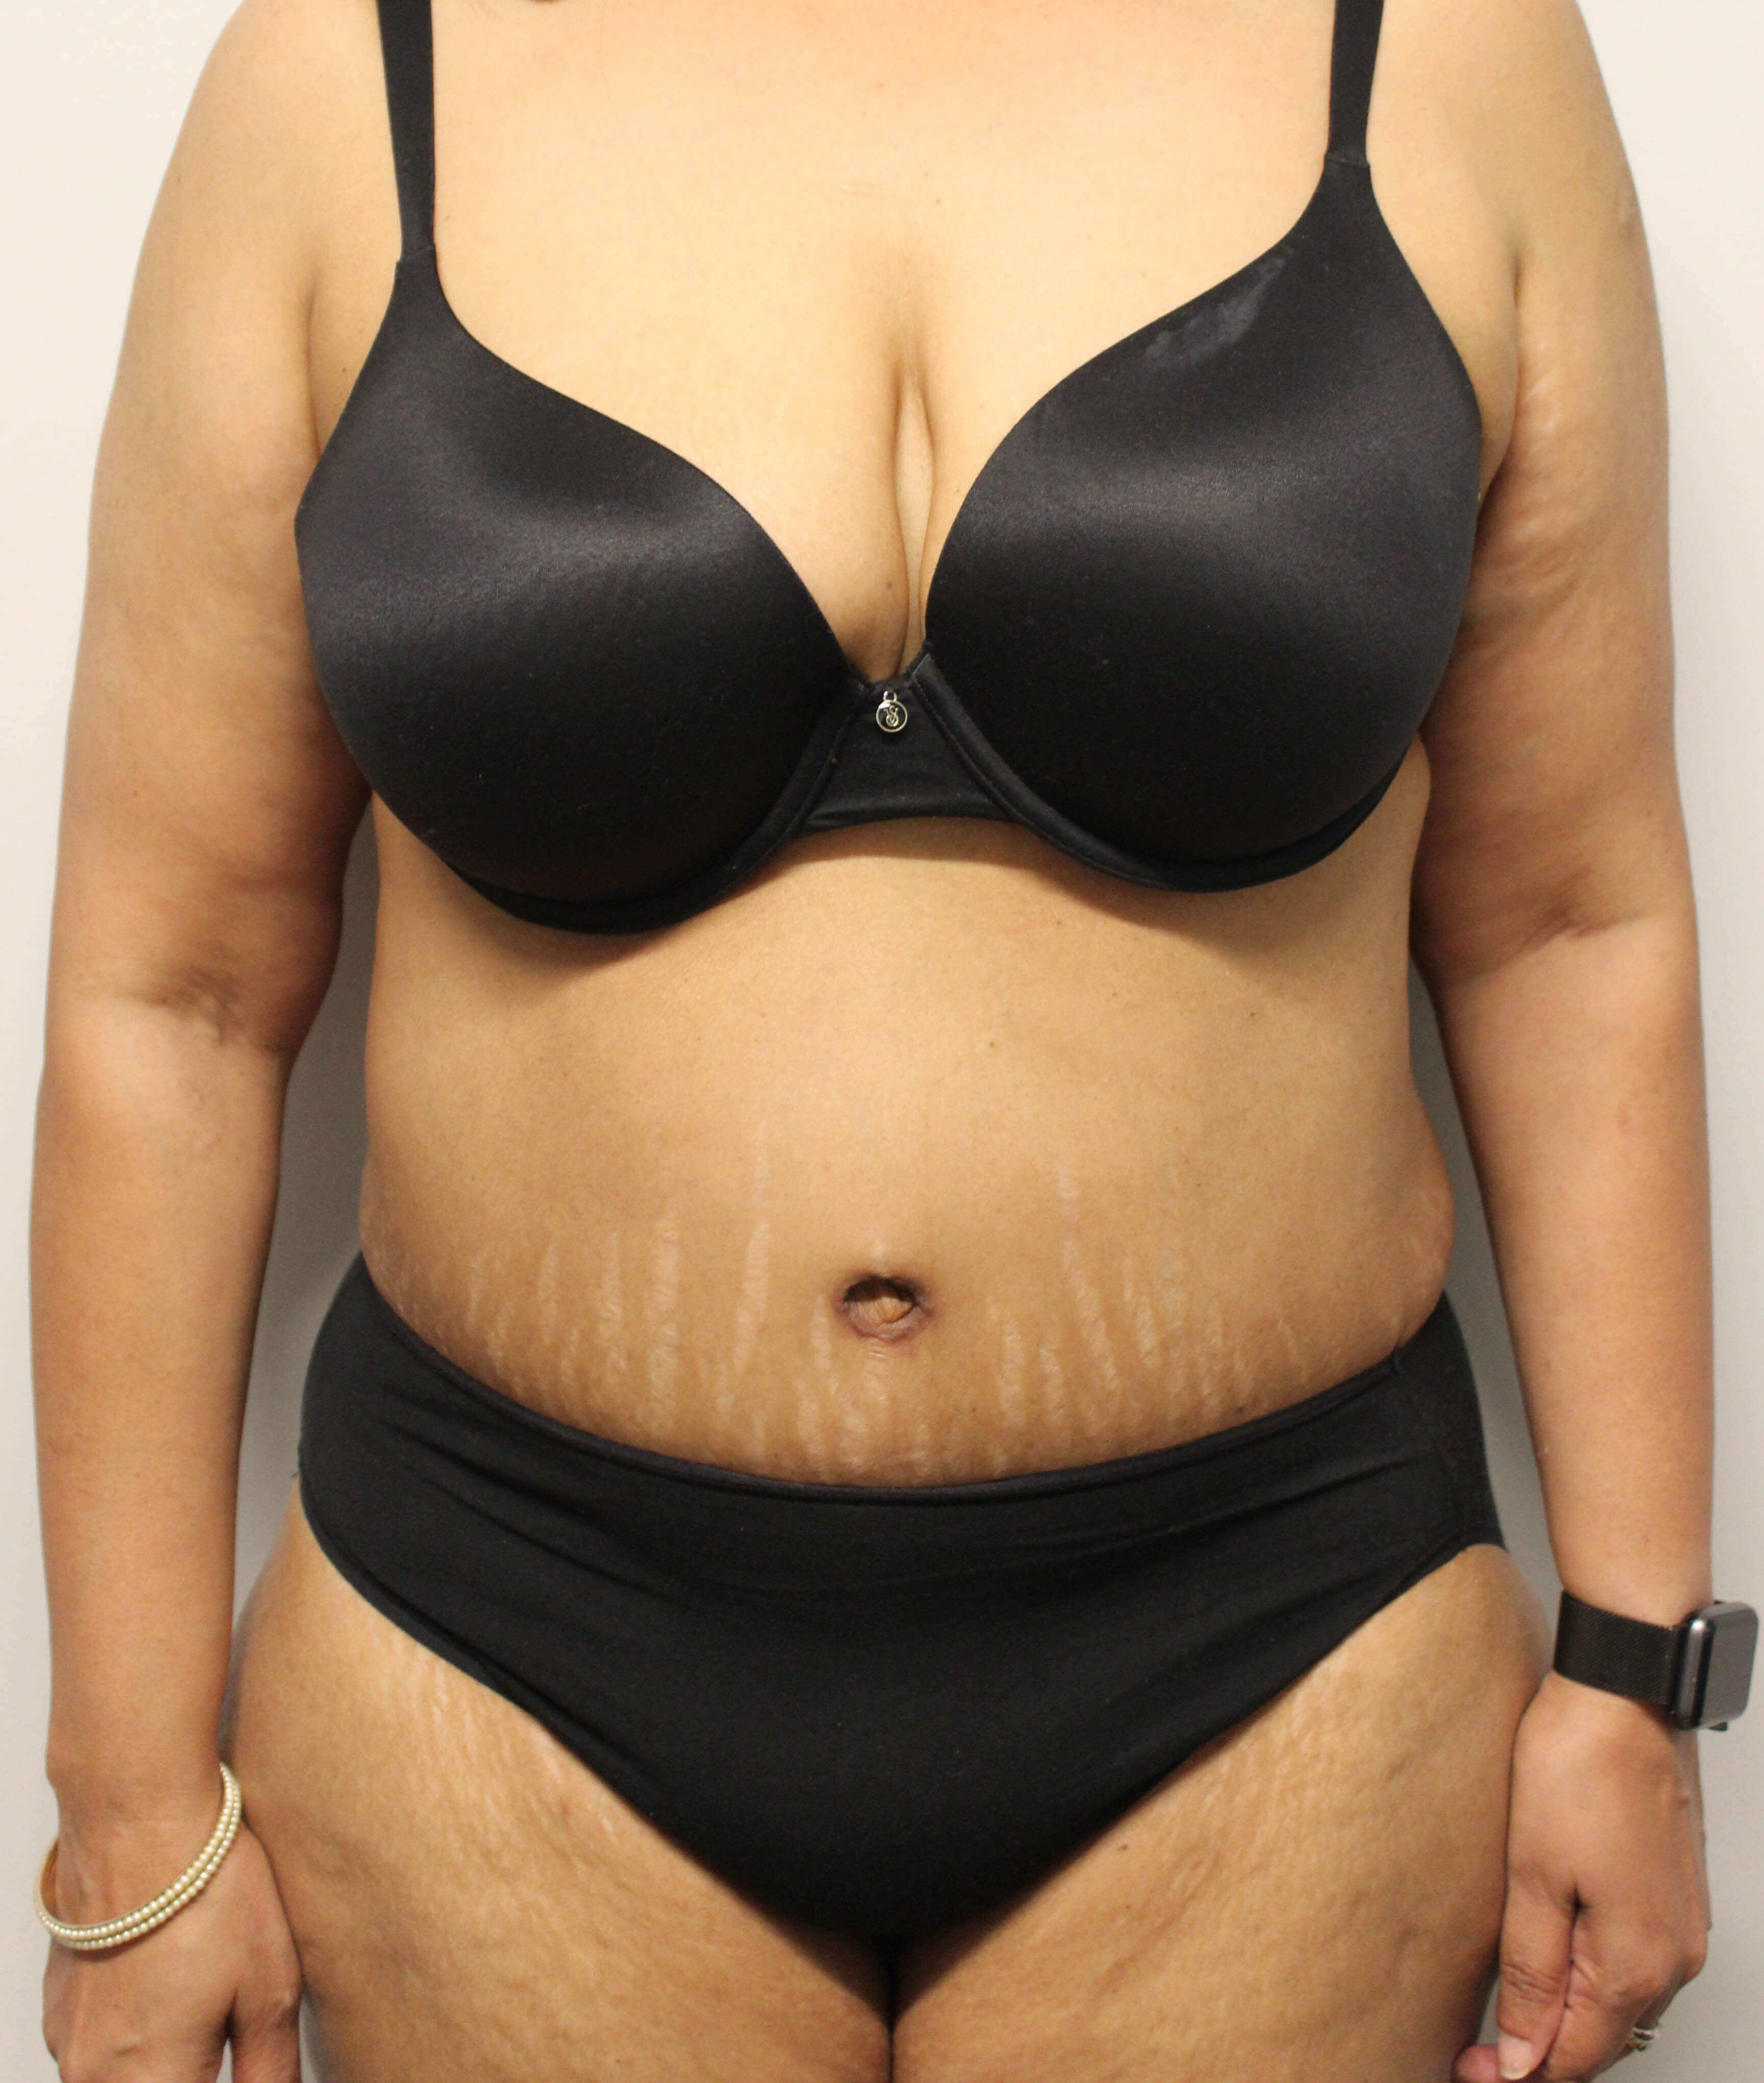 Abdominoplasty Surgery After